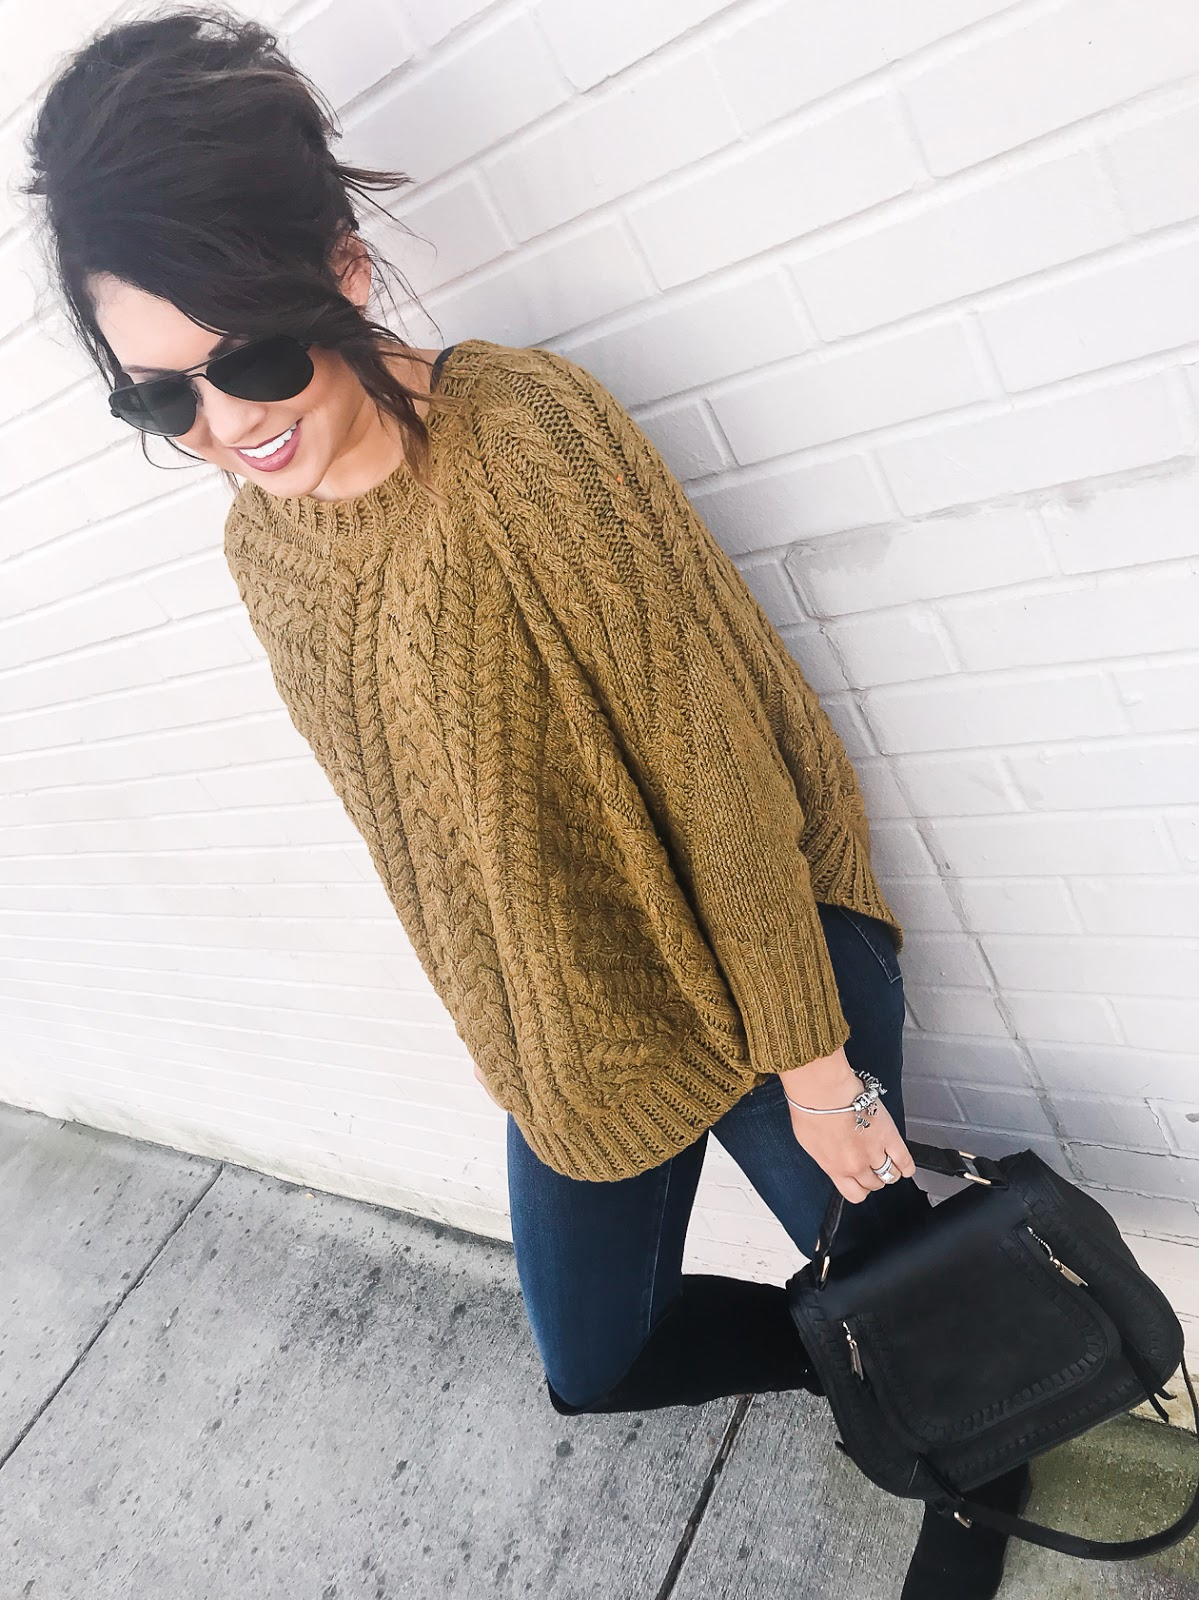 black friday sales, sweater poncho, anthropologie look, life and messy hair, xo samantha brooke